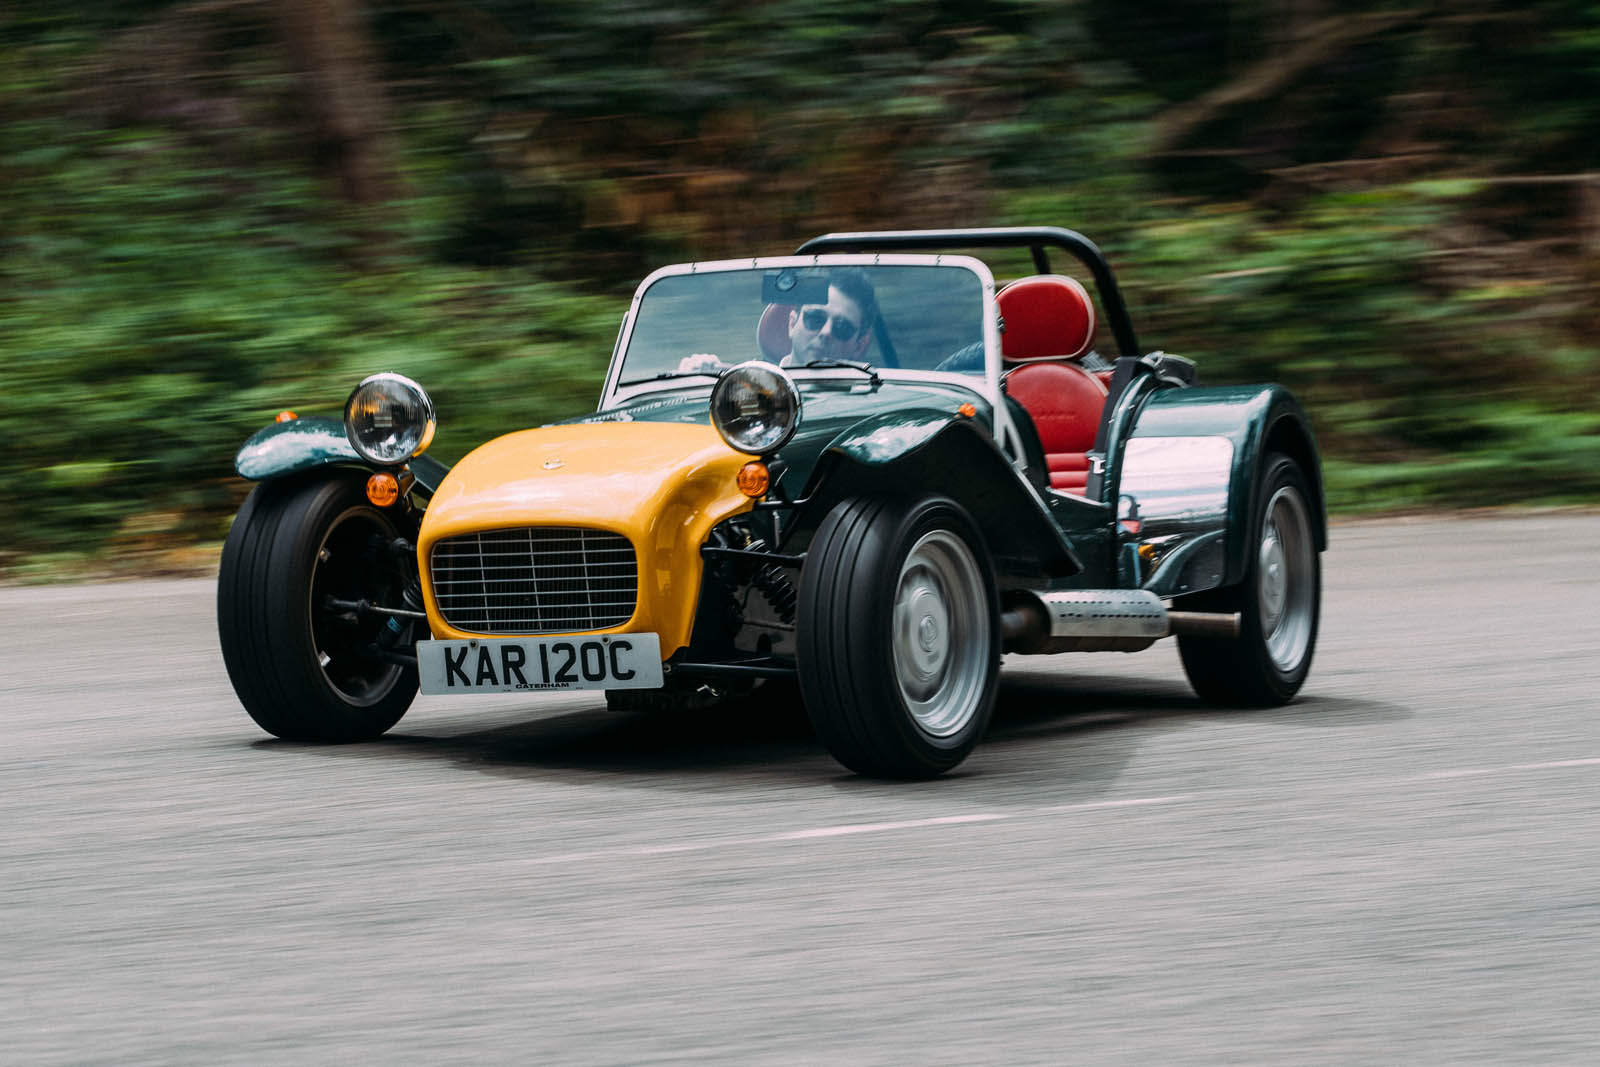 Historic Caterham Photoshoot.Longcross Test Track31st May 2017Images copyright Malcolm Griffiths07768 230706www.malcolm.gb.net